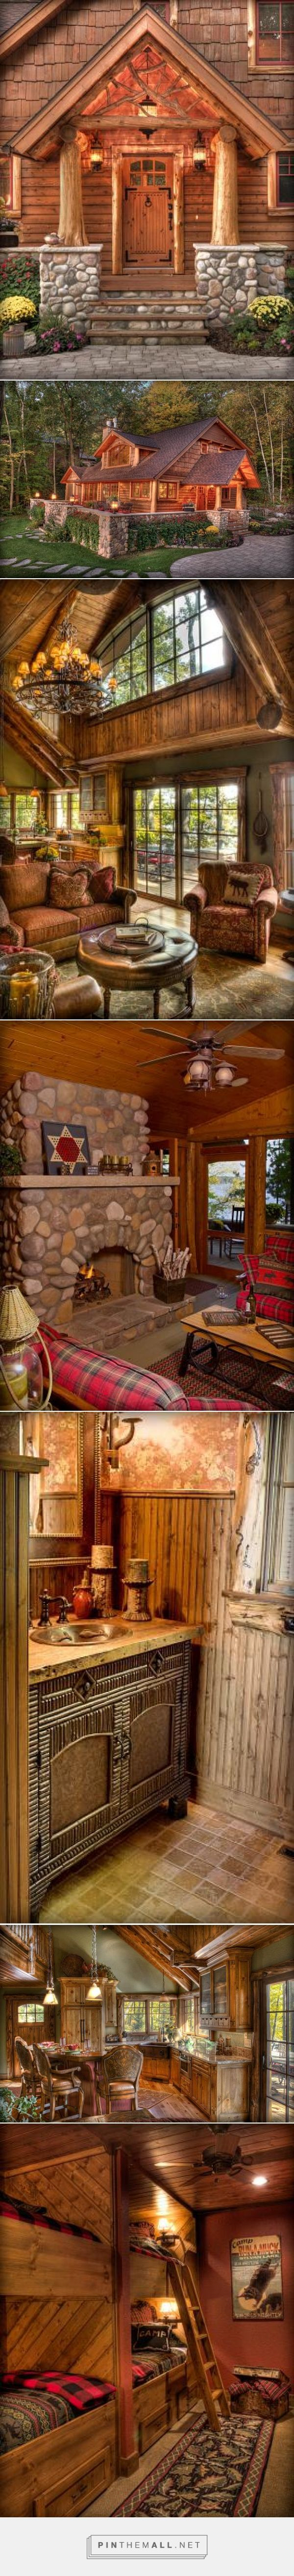 This house is ticking off all the boxes for me in what I want in a rustic cabin aka log home. - collage created via http://pinthemall.net